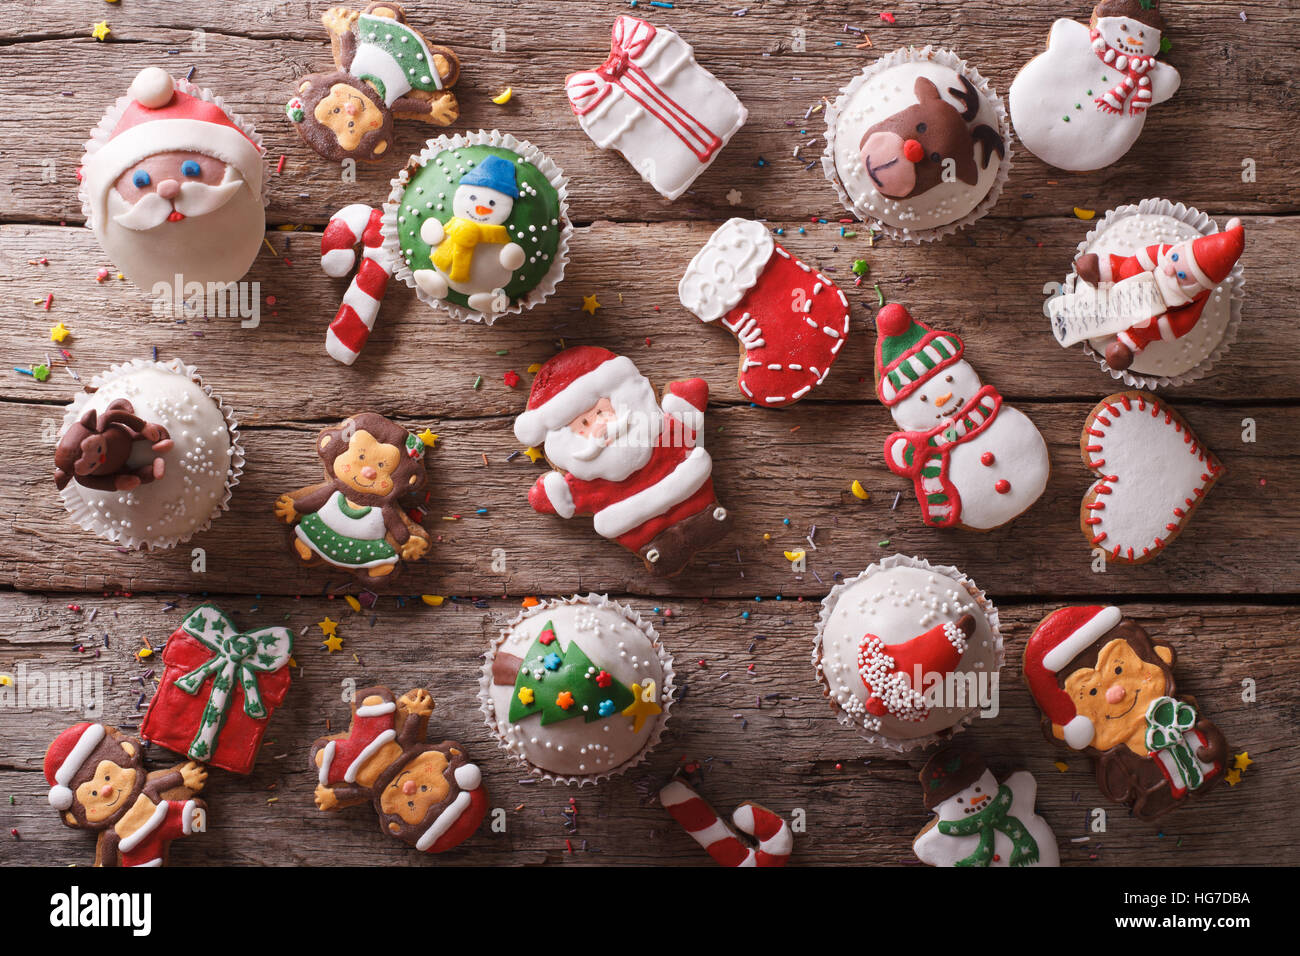 Background of Christmas sweets closeup on a wooden table. horizontal view from above - Stock Image